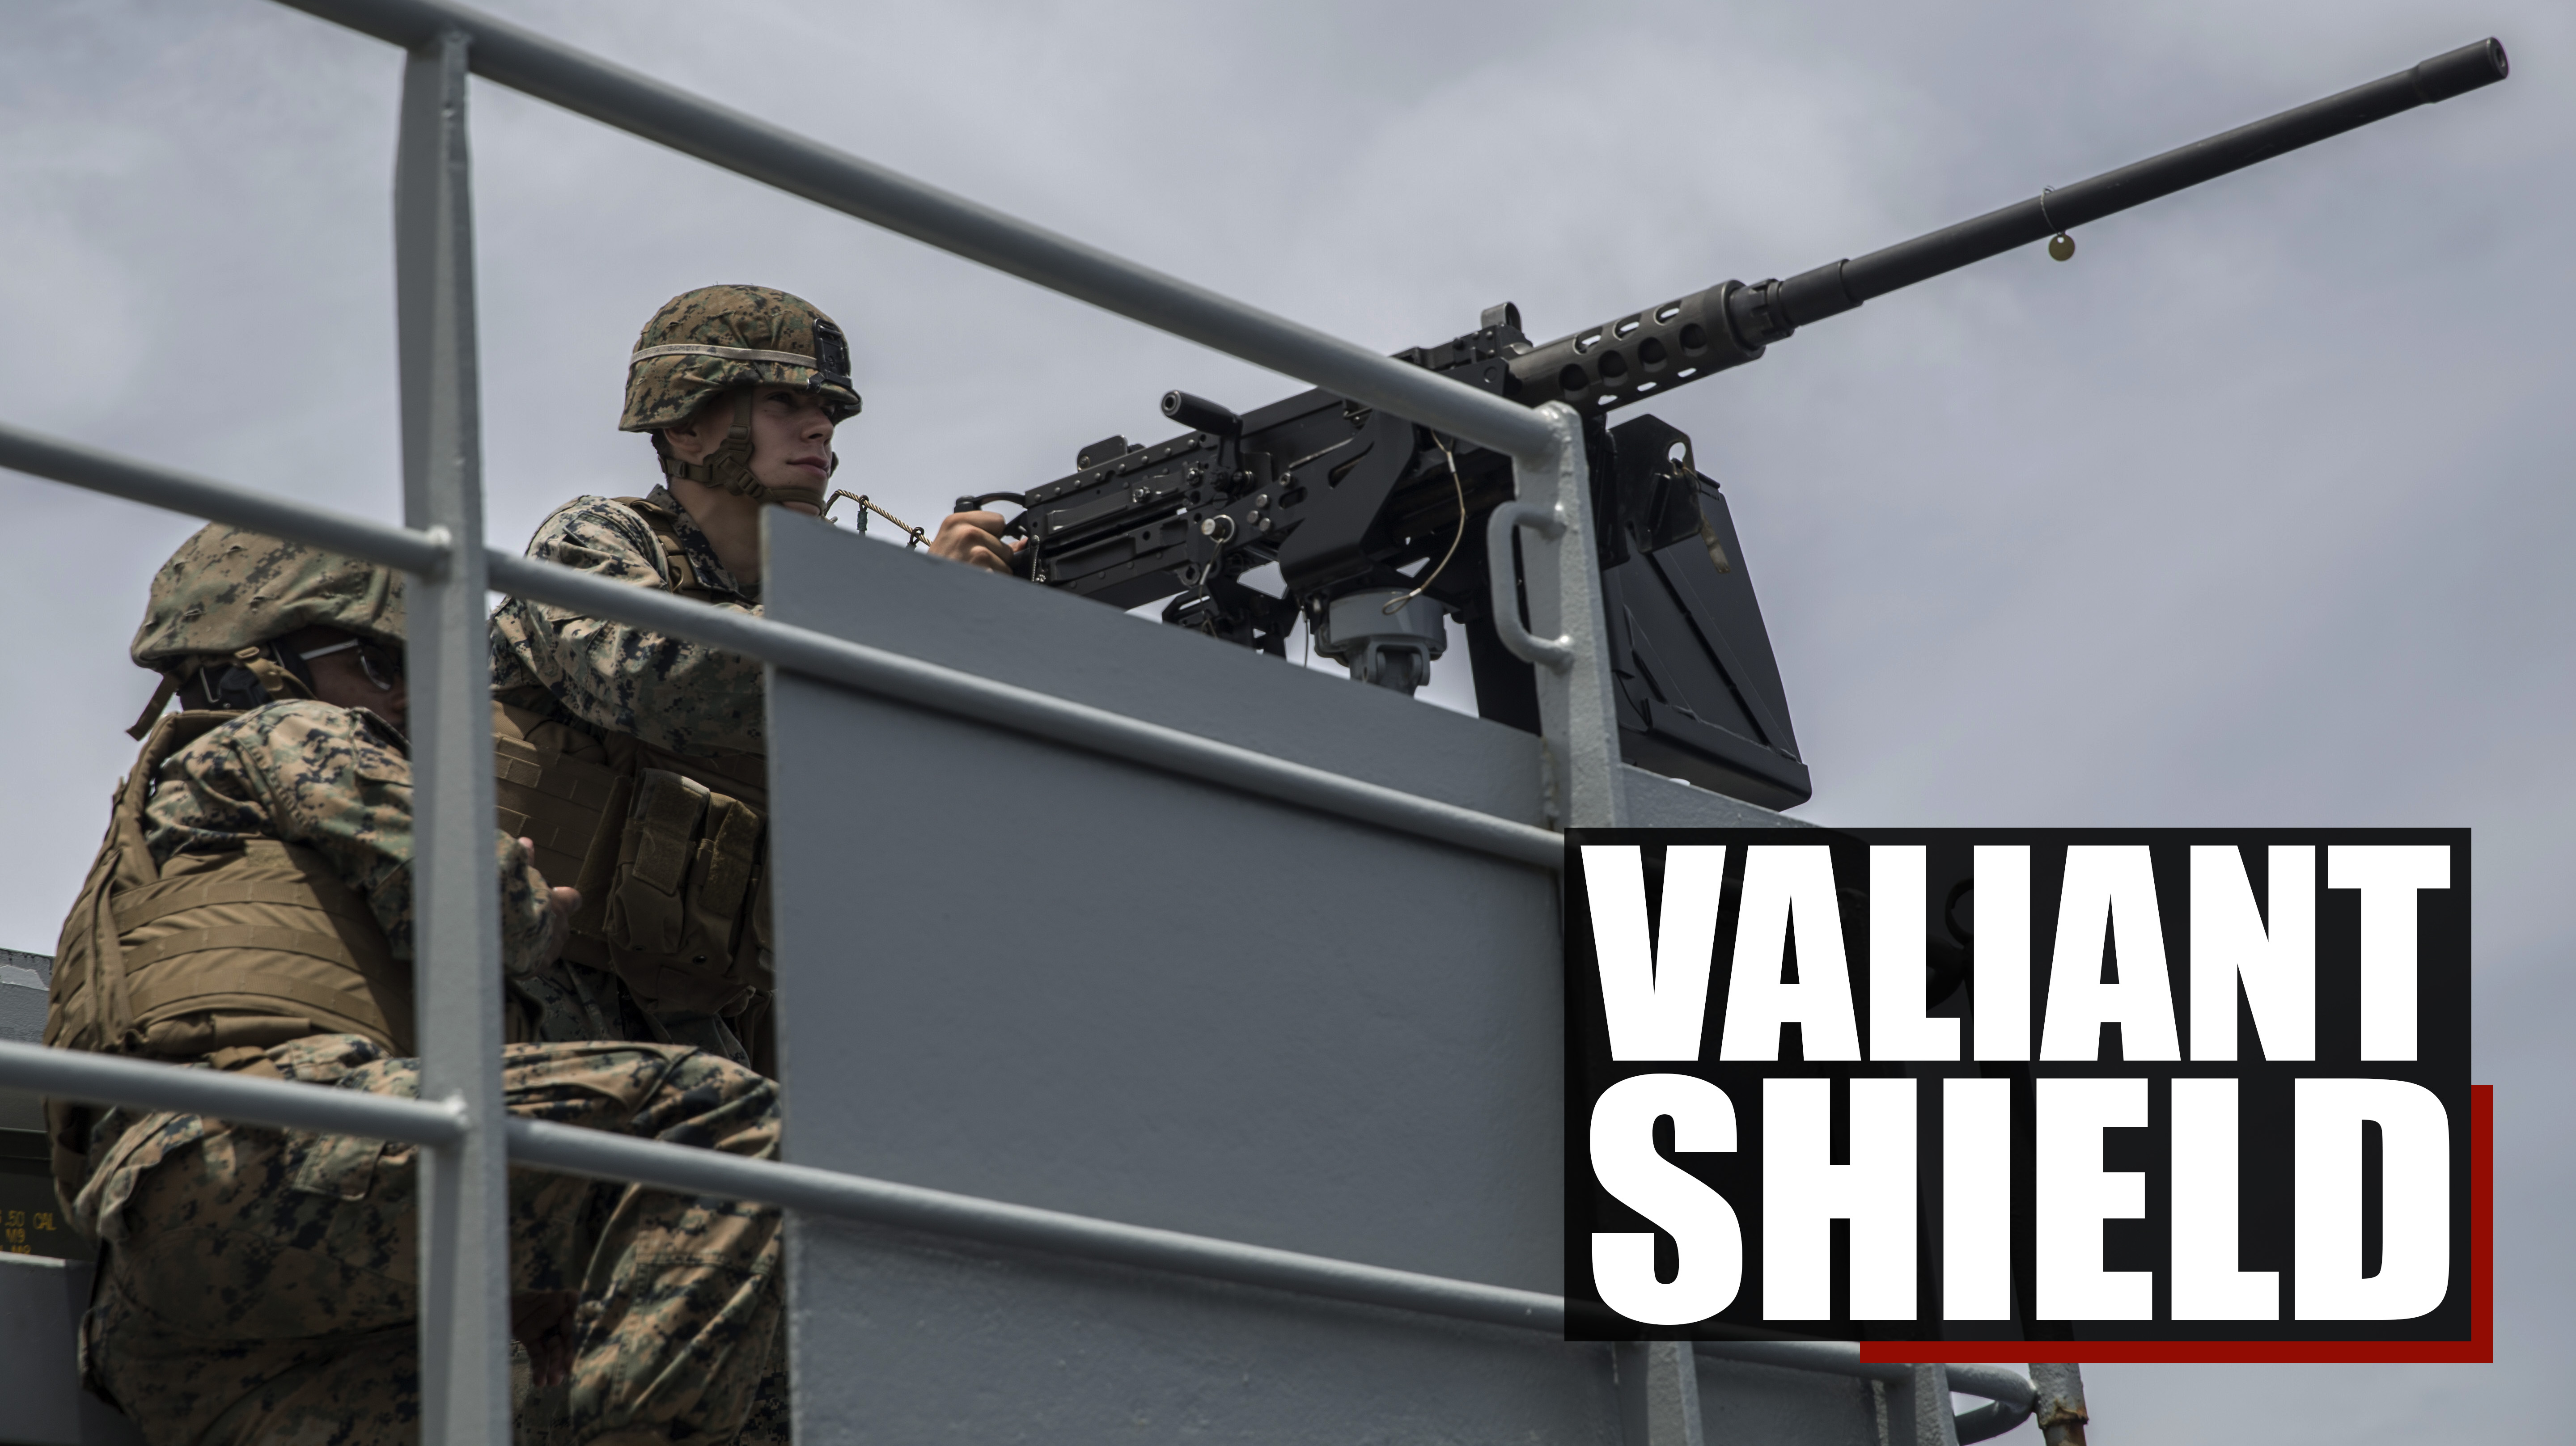 Valiant Shield